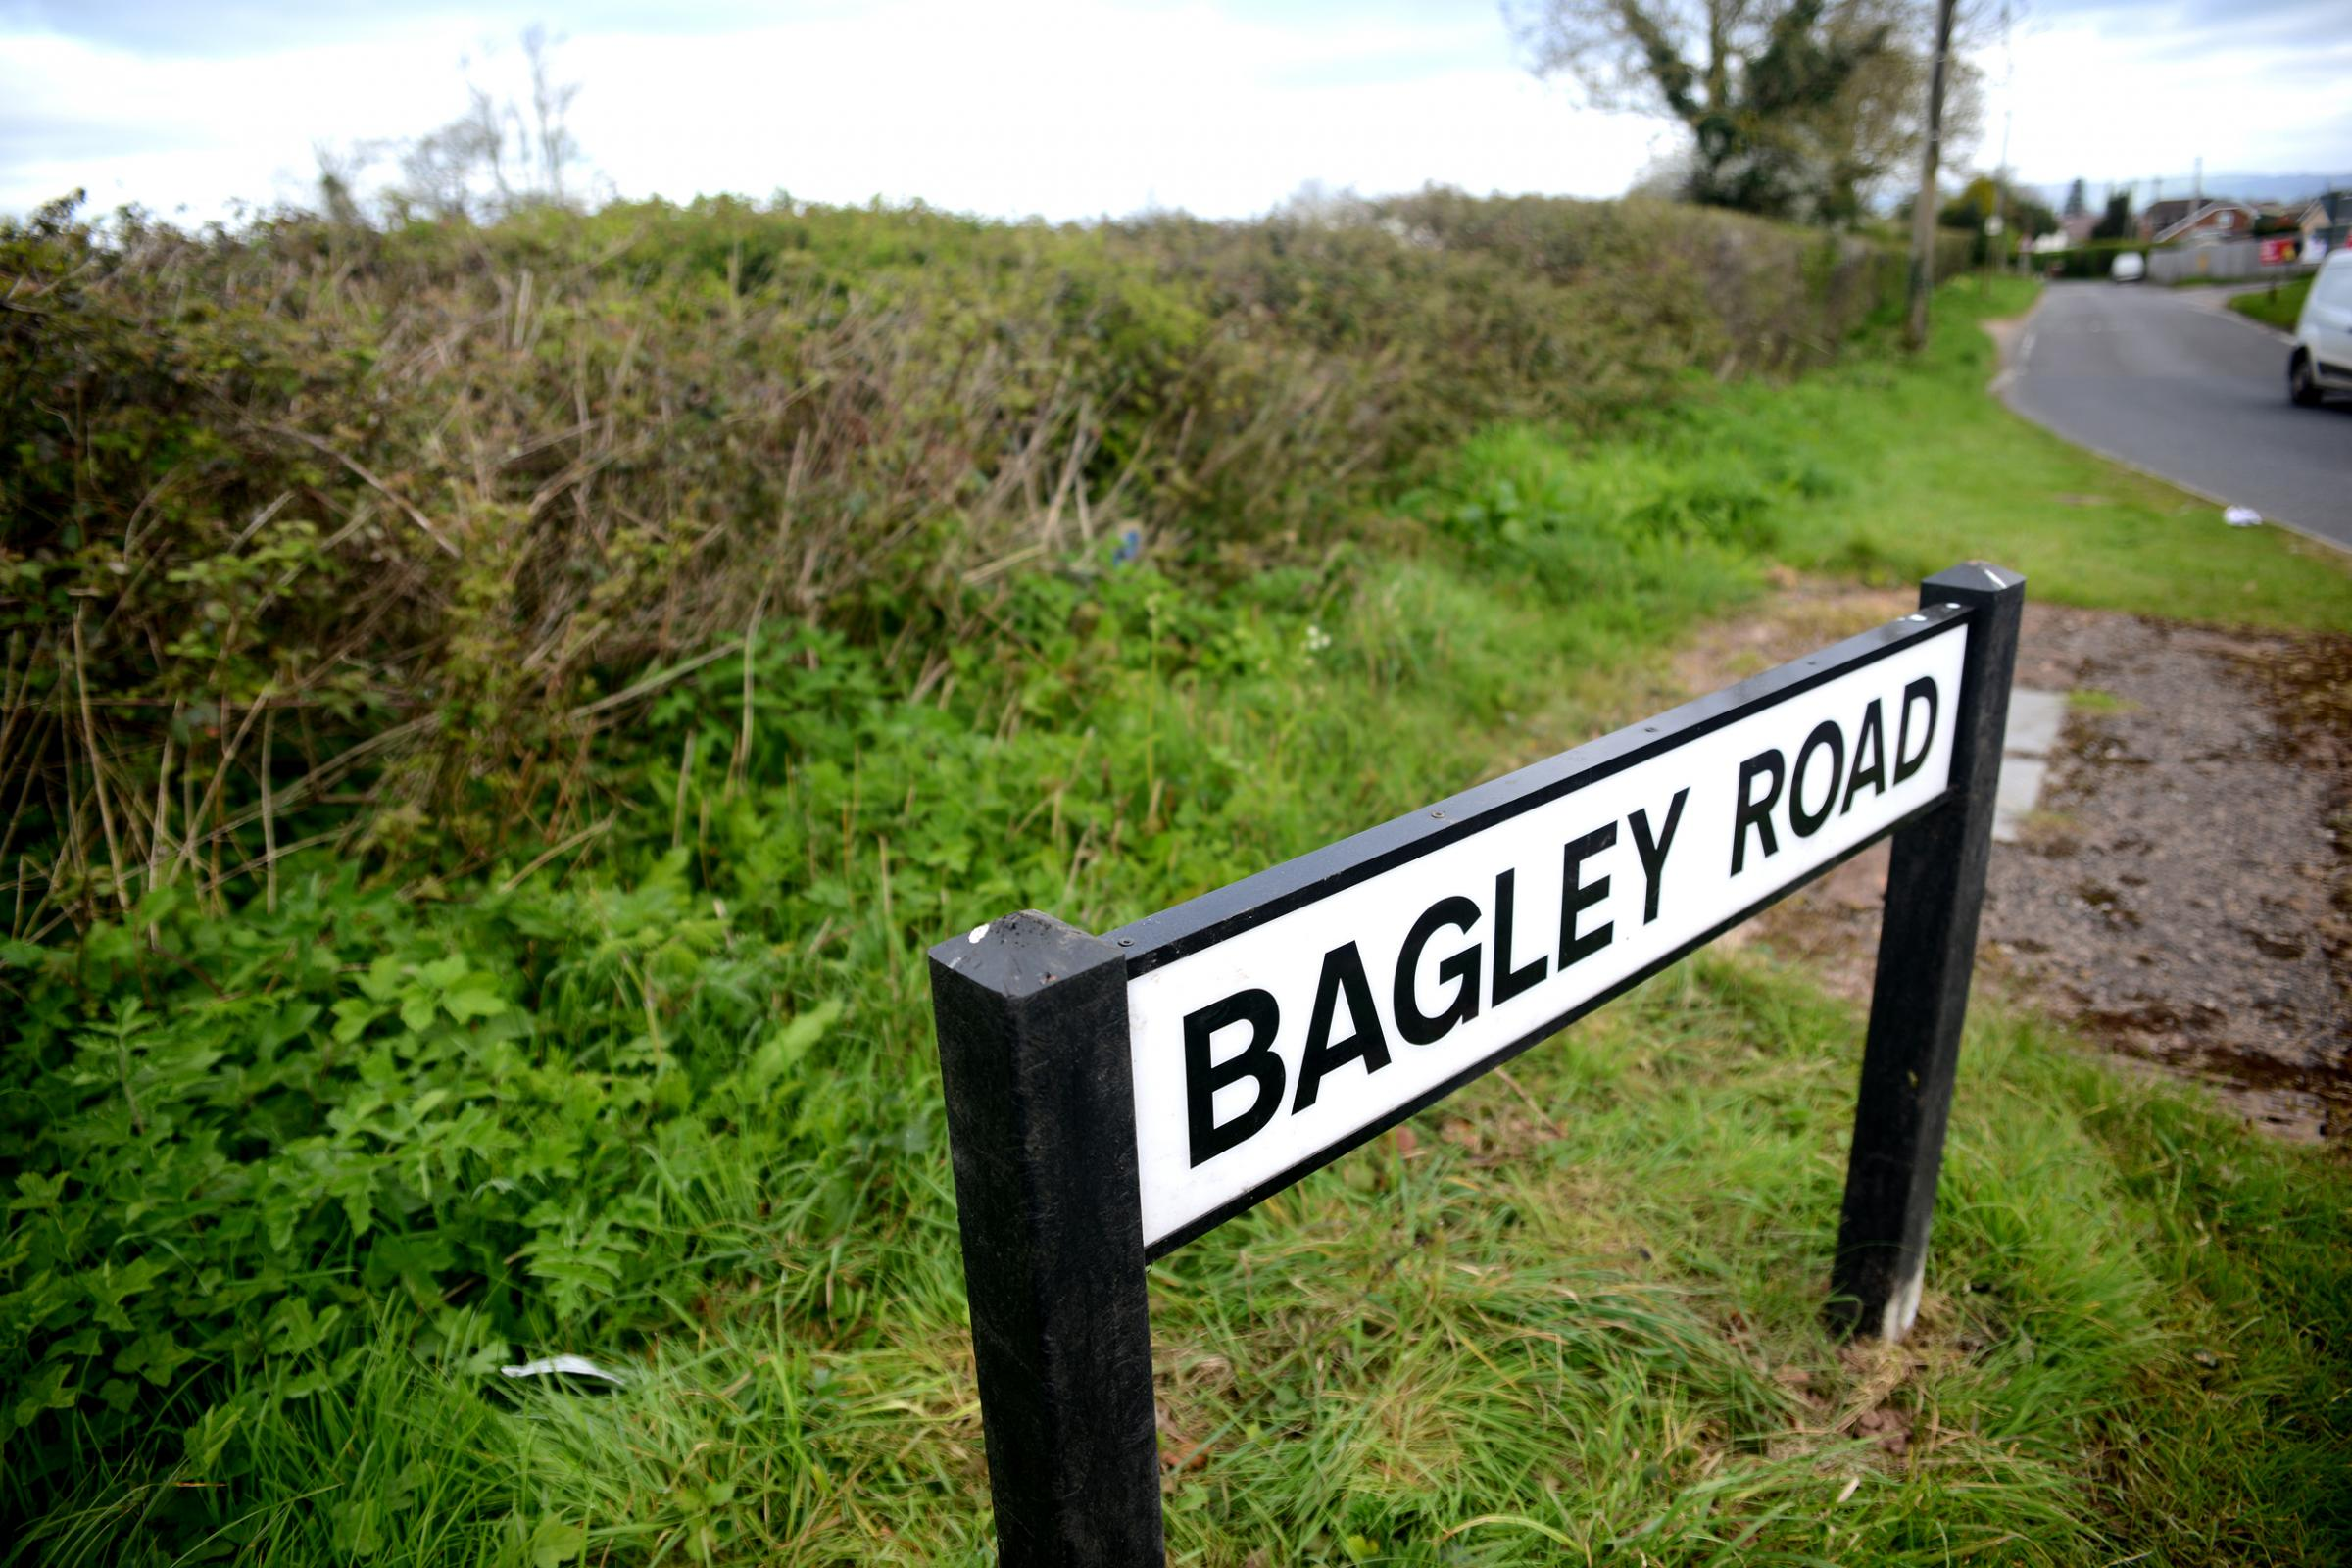 RESTART: The appeal for land near to Bagley Road